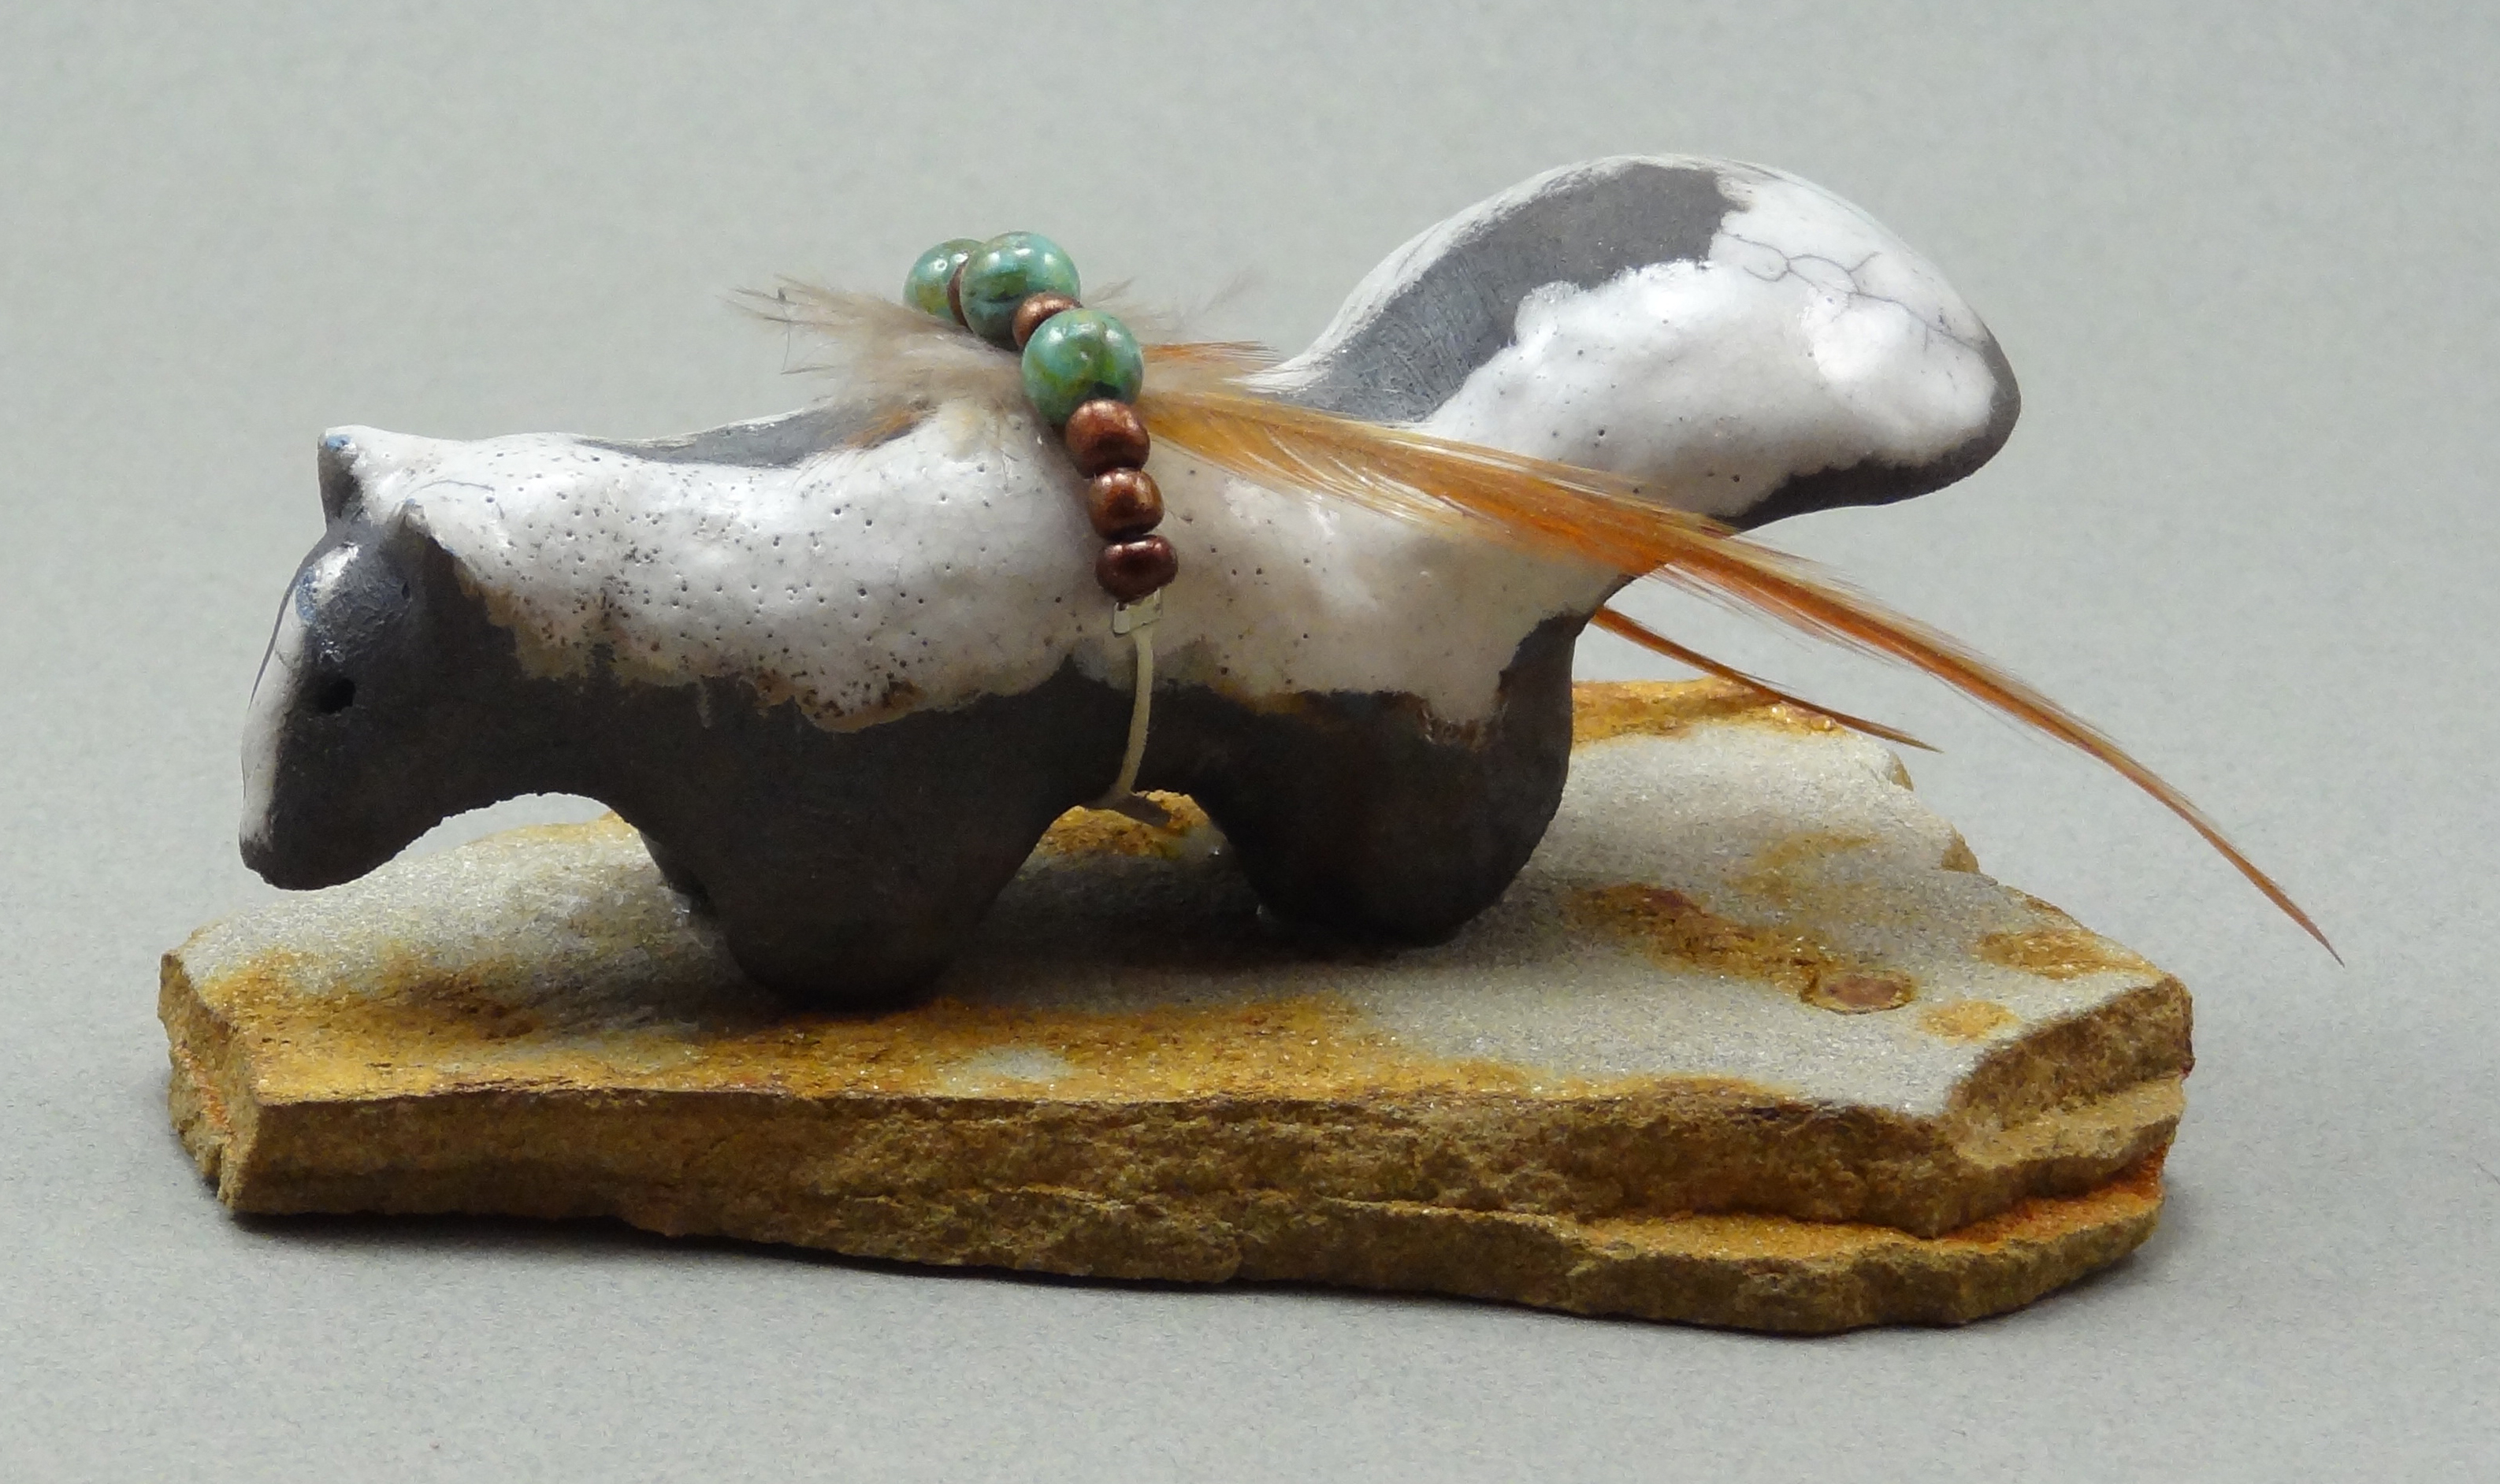 Skunk, White Crackle glaze, raku fired, 4 x 1 x 1.5 inches, mounted on flagstone